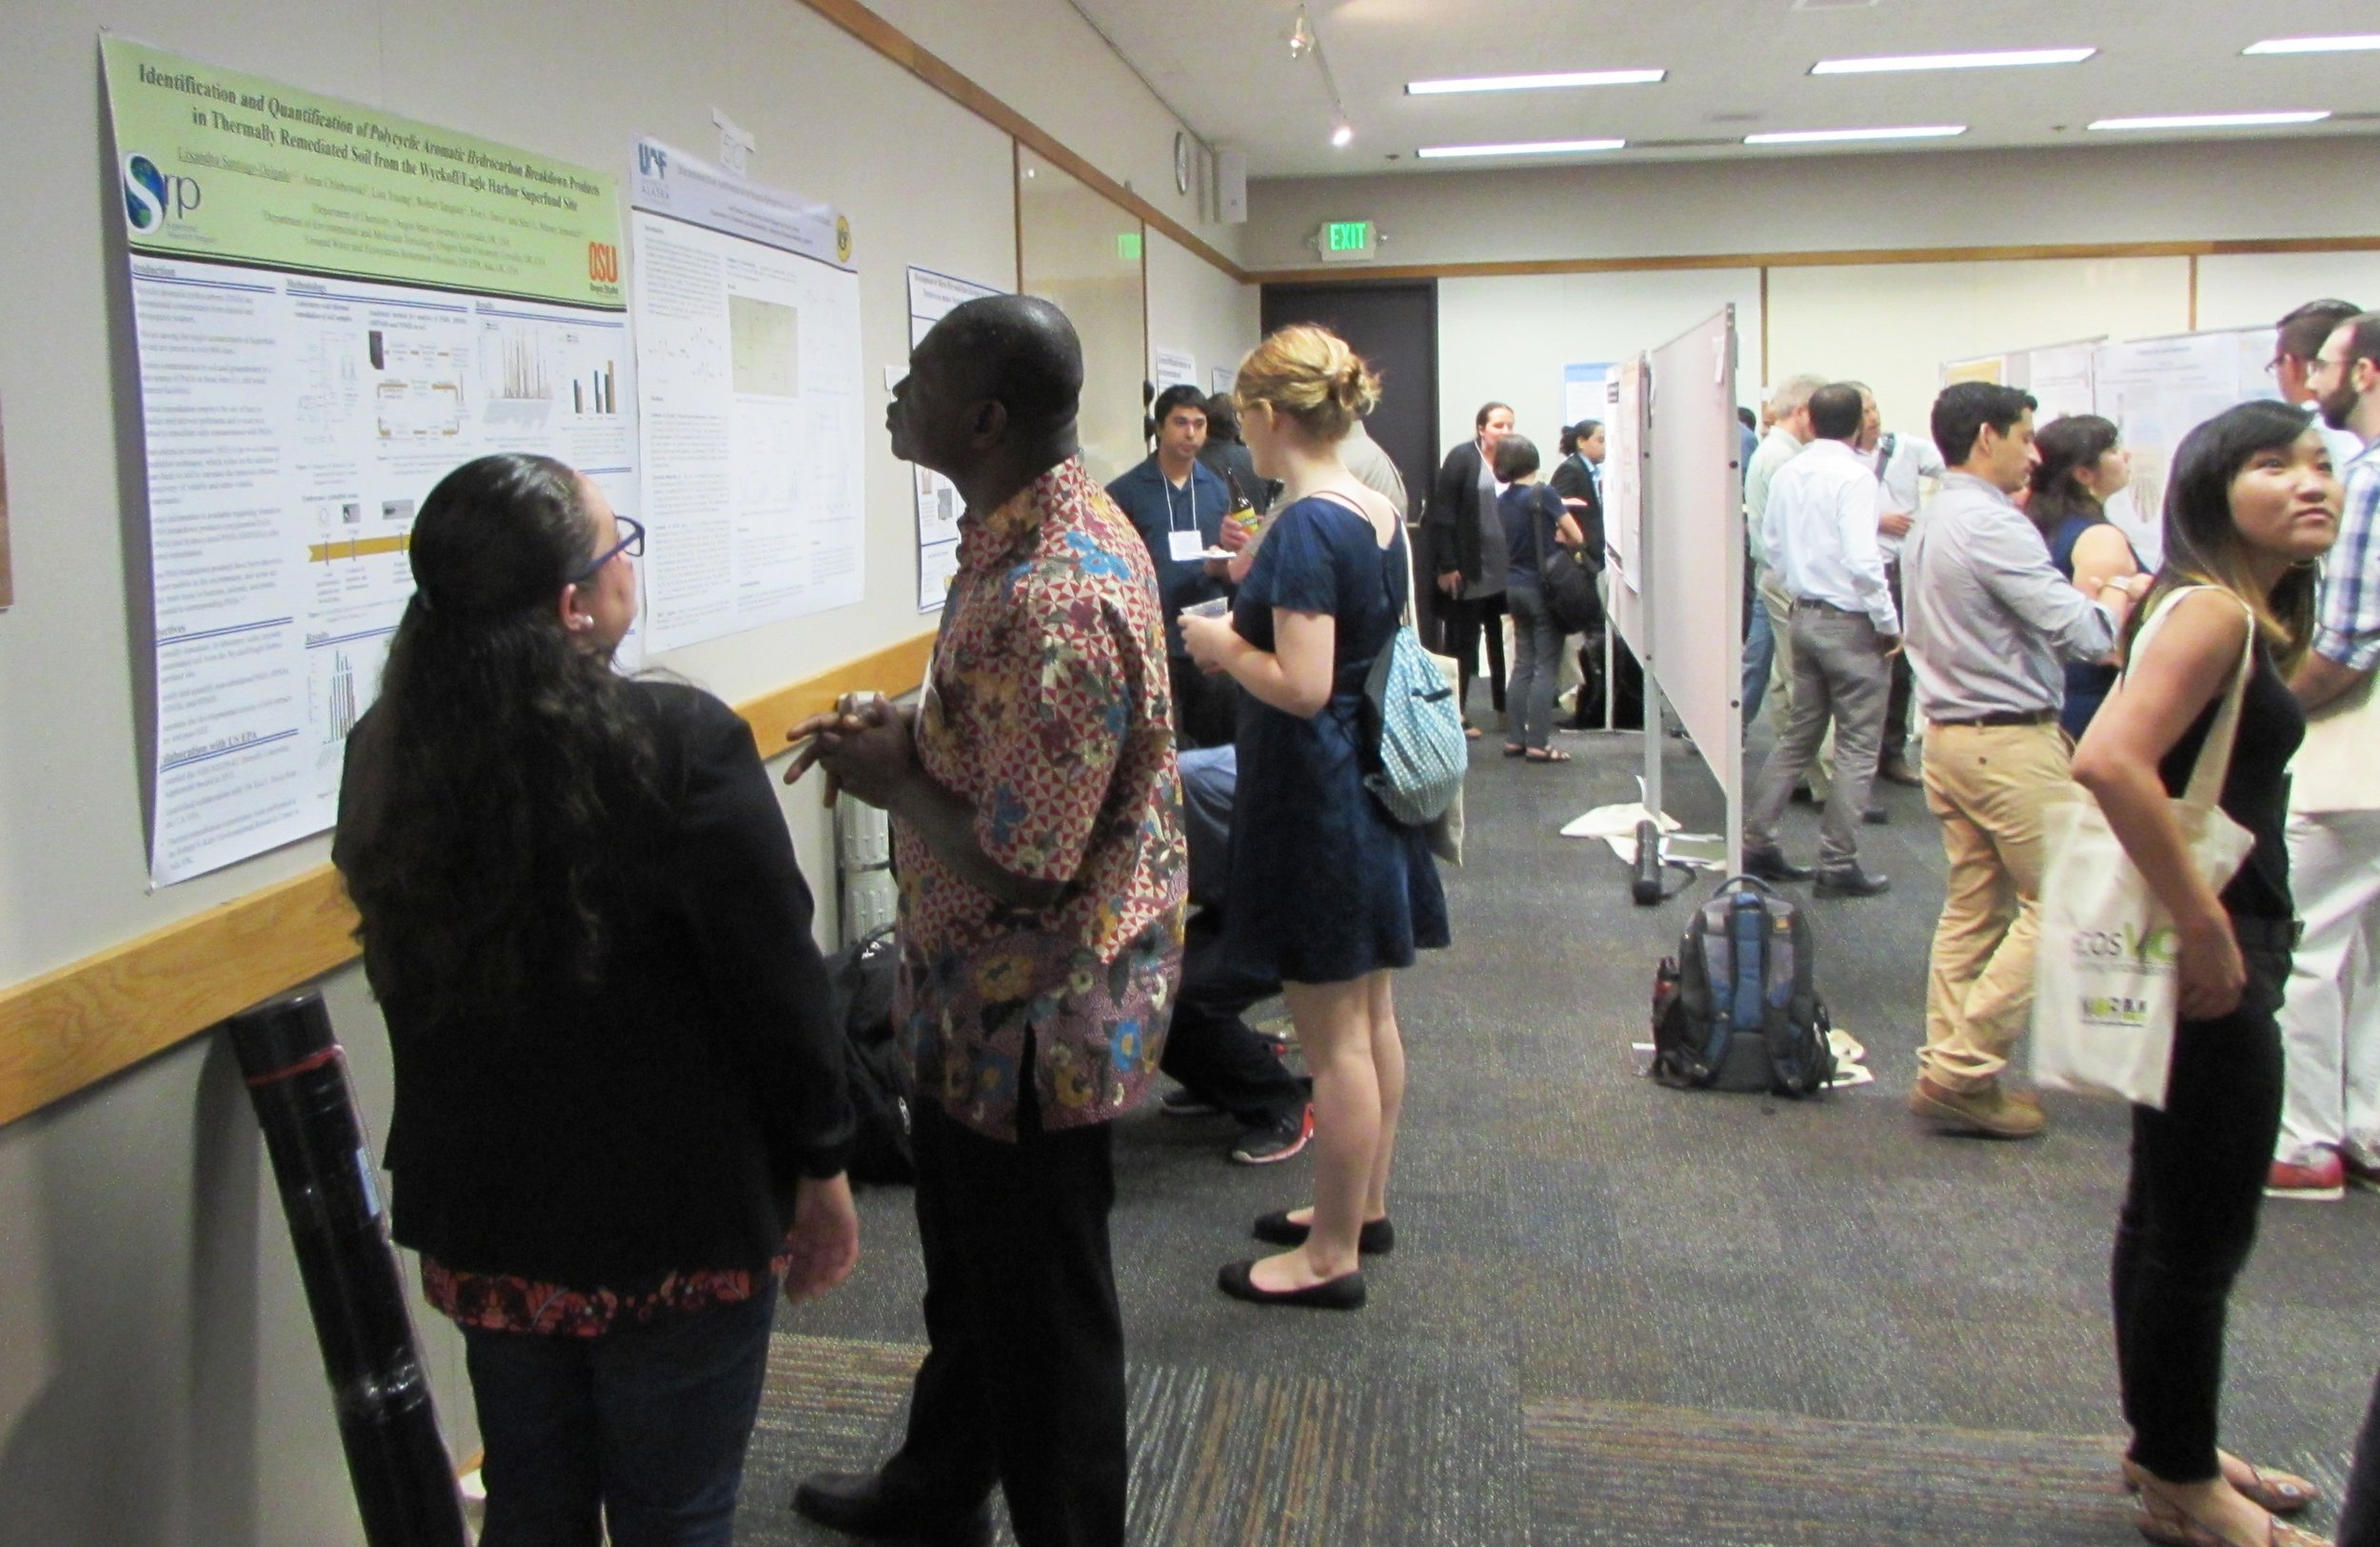 Sunday_PosterSession_NORM2017_1.jpg